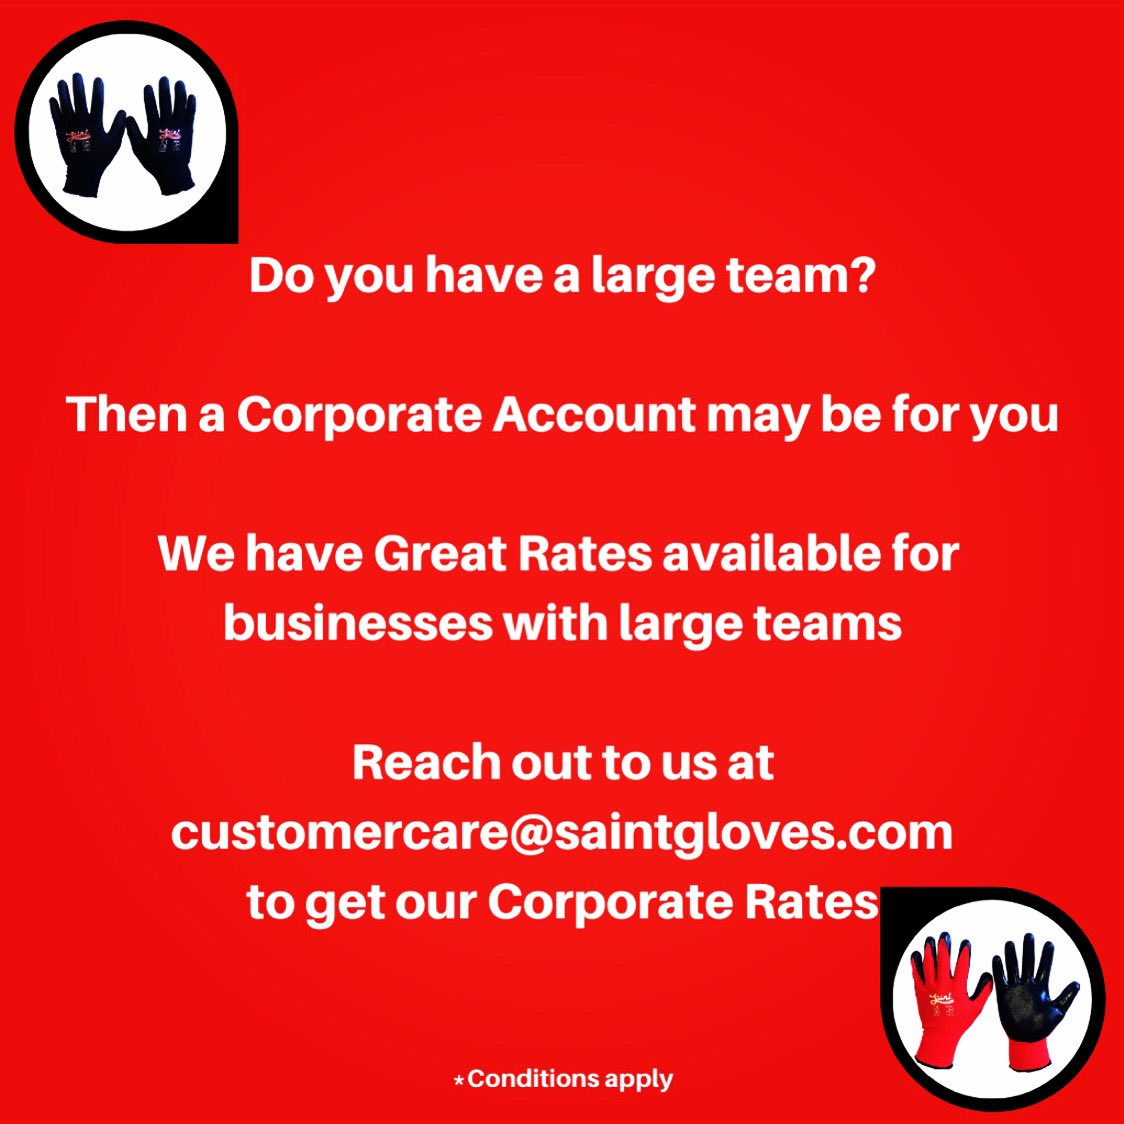 We now have Corporate Rates available for Organisations with large demands for Work Gloves  #3pl #builders #concrete #construction #demolition #ecommerce #Engineering #excavation #landscape #logistics #manufacturing #SupplyChain #theblock #tools #Trade #transport #warehousing https://t.co/3S5N53cGyP